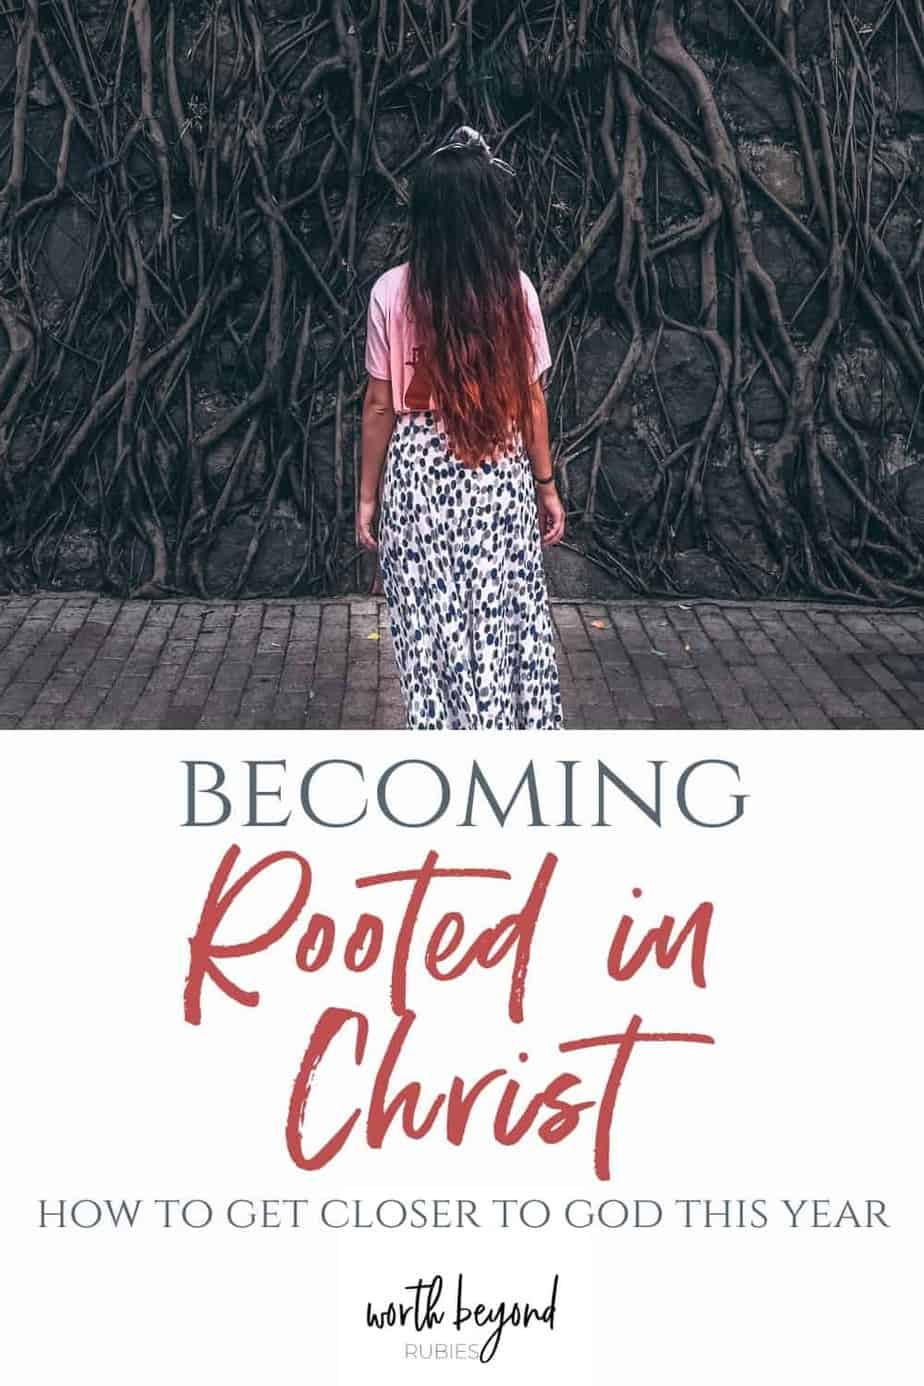 Small girl staring at root covered wall with text overlay that says Becoming Rooted in Christ - How to Get Closer to God This Year